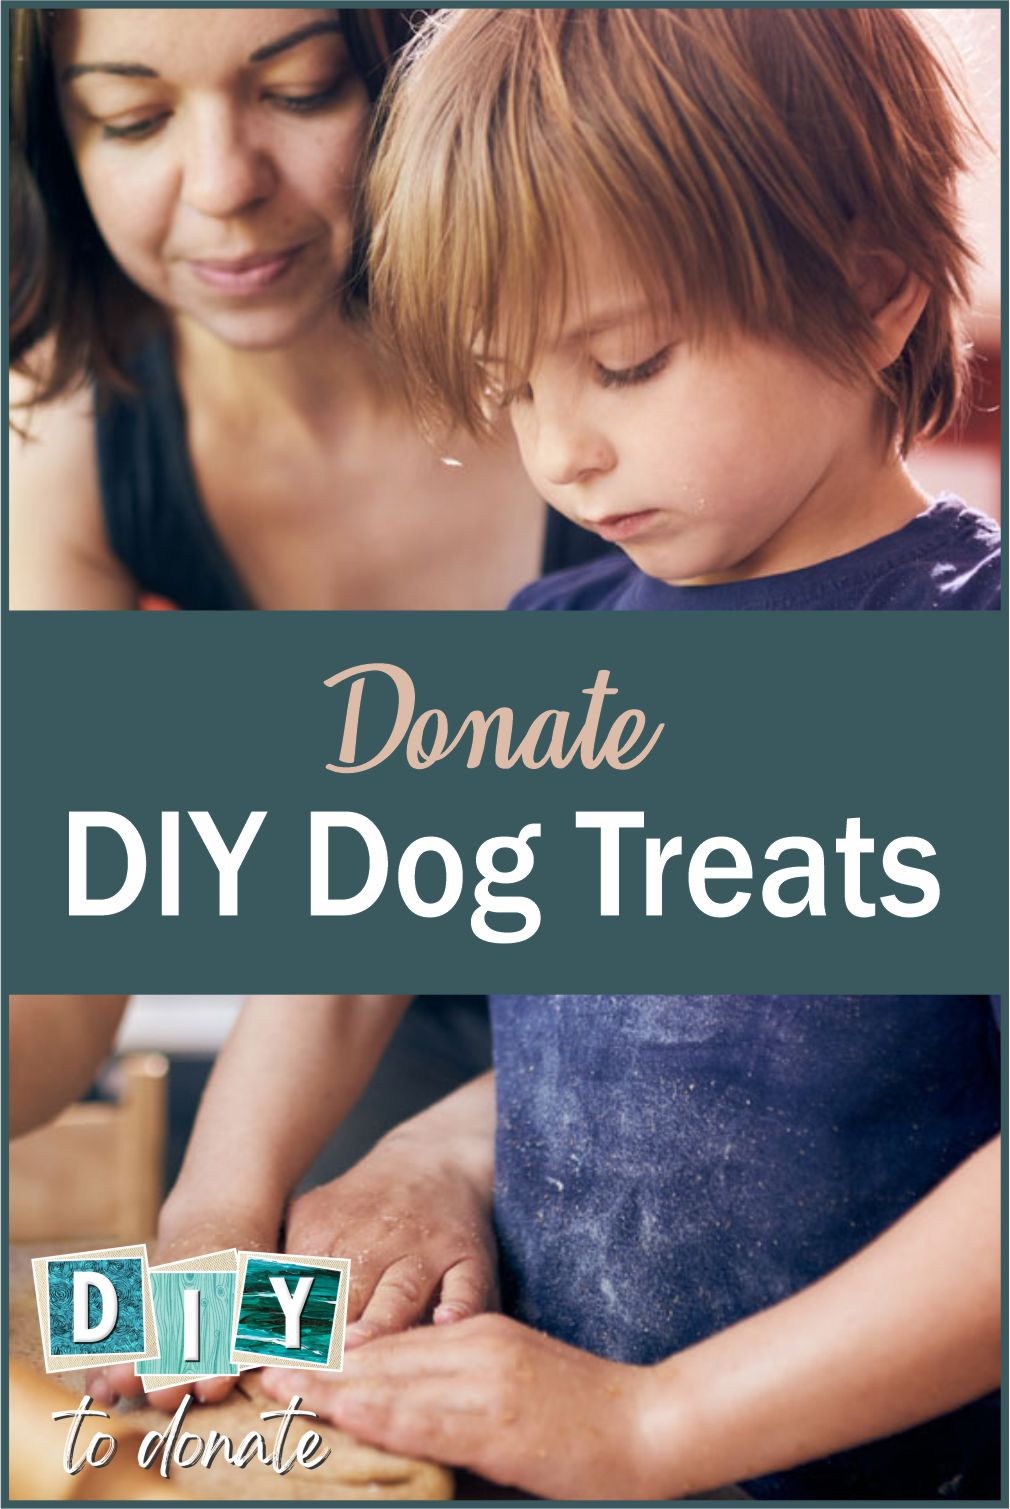 Animal shelters appreciate donations of homemade dog and cat treats. You can also sell your treats to purchase needed items for the shelter. #diytodonate #pettreats #donations #petshelters #homemade #communityservice #petcare #pets